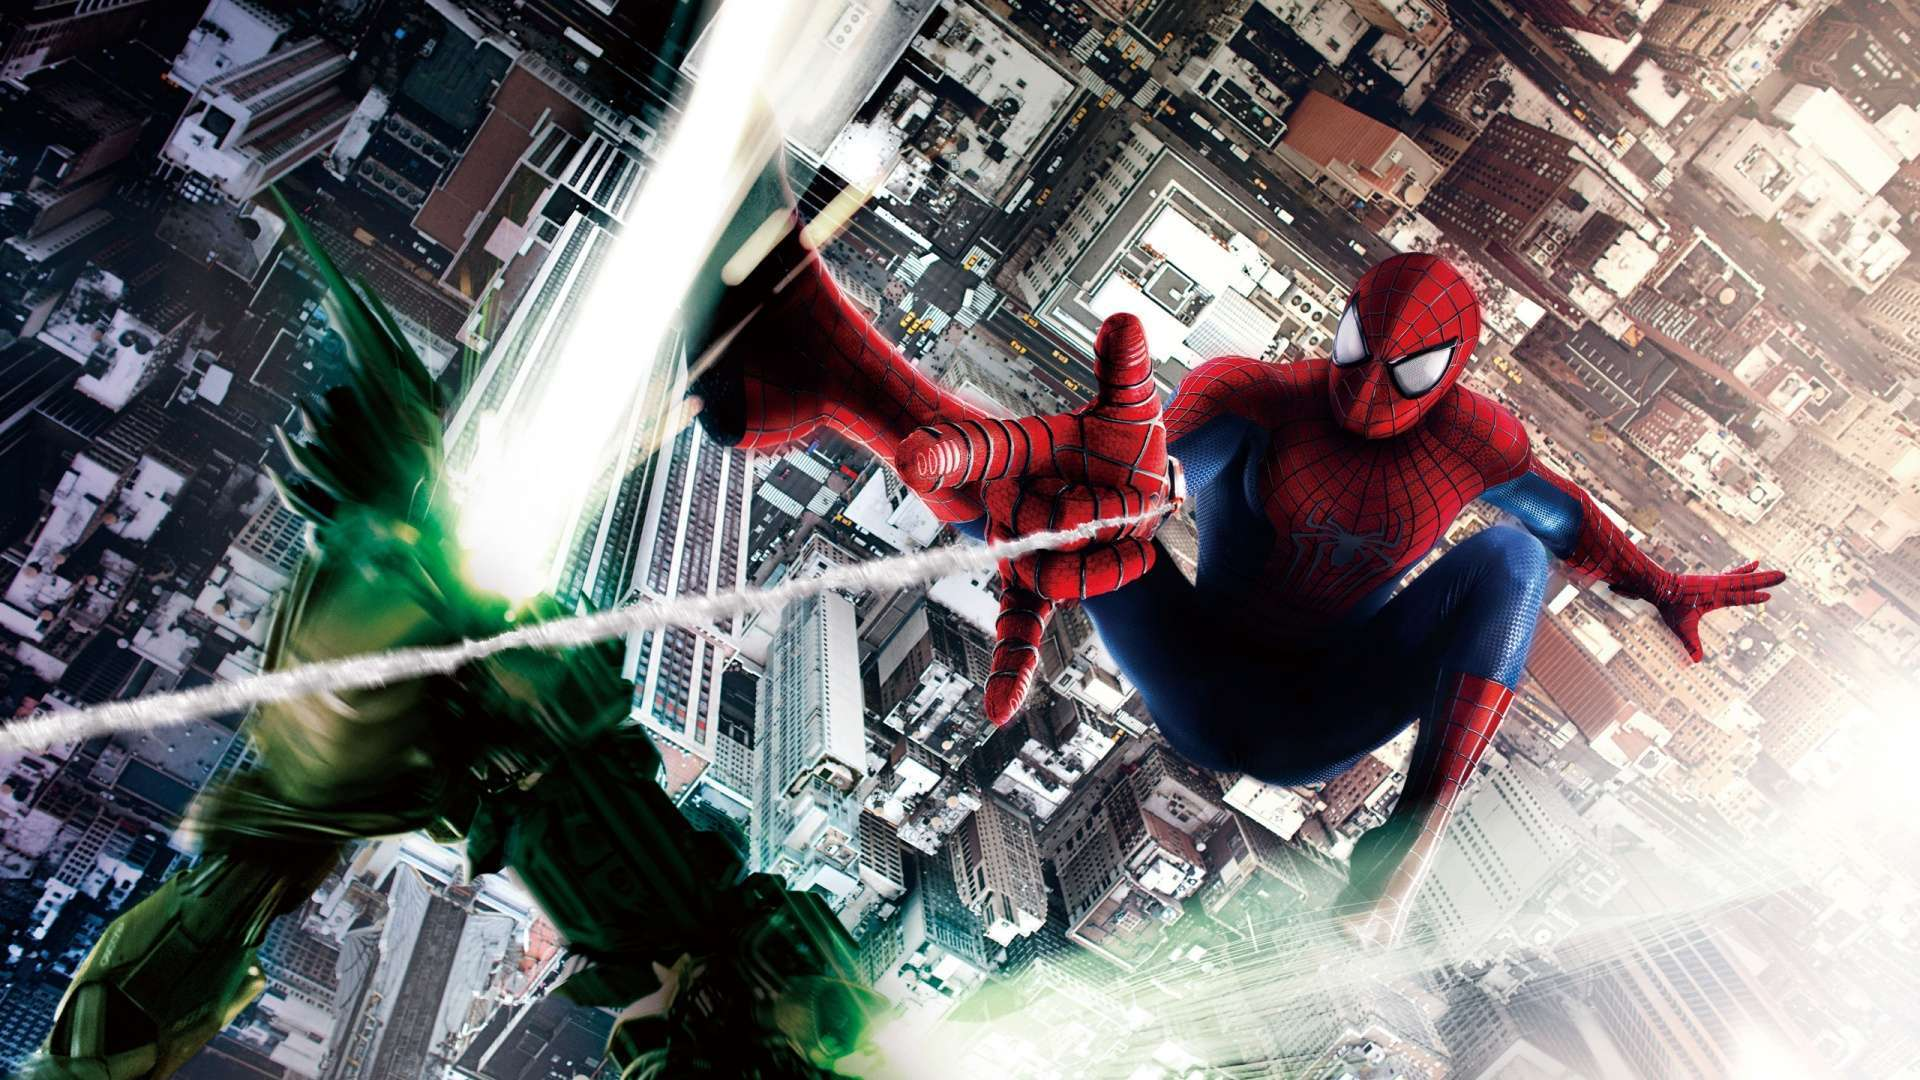 Wallpaper Hd Wallpaper The Amazing Spider Man 2 Imax 1080p Upload at 1920x1080